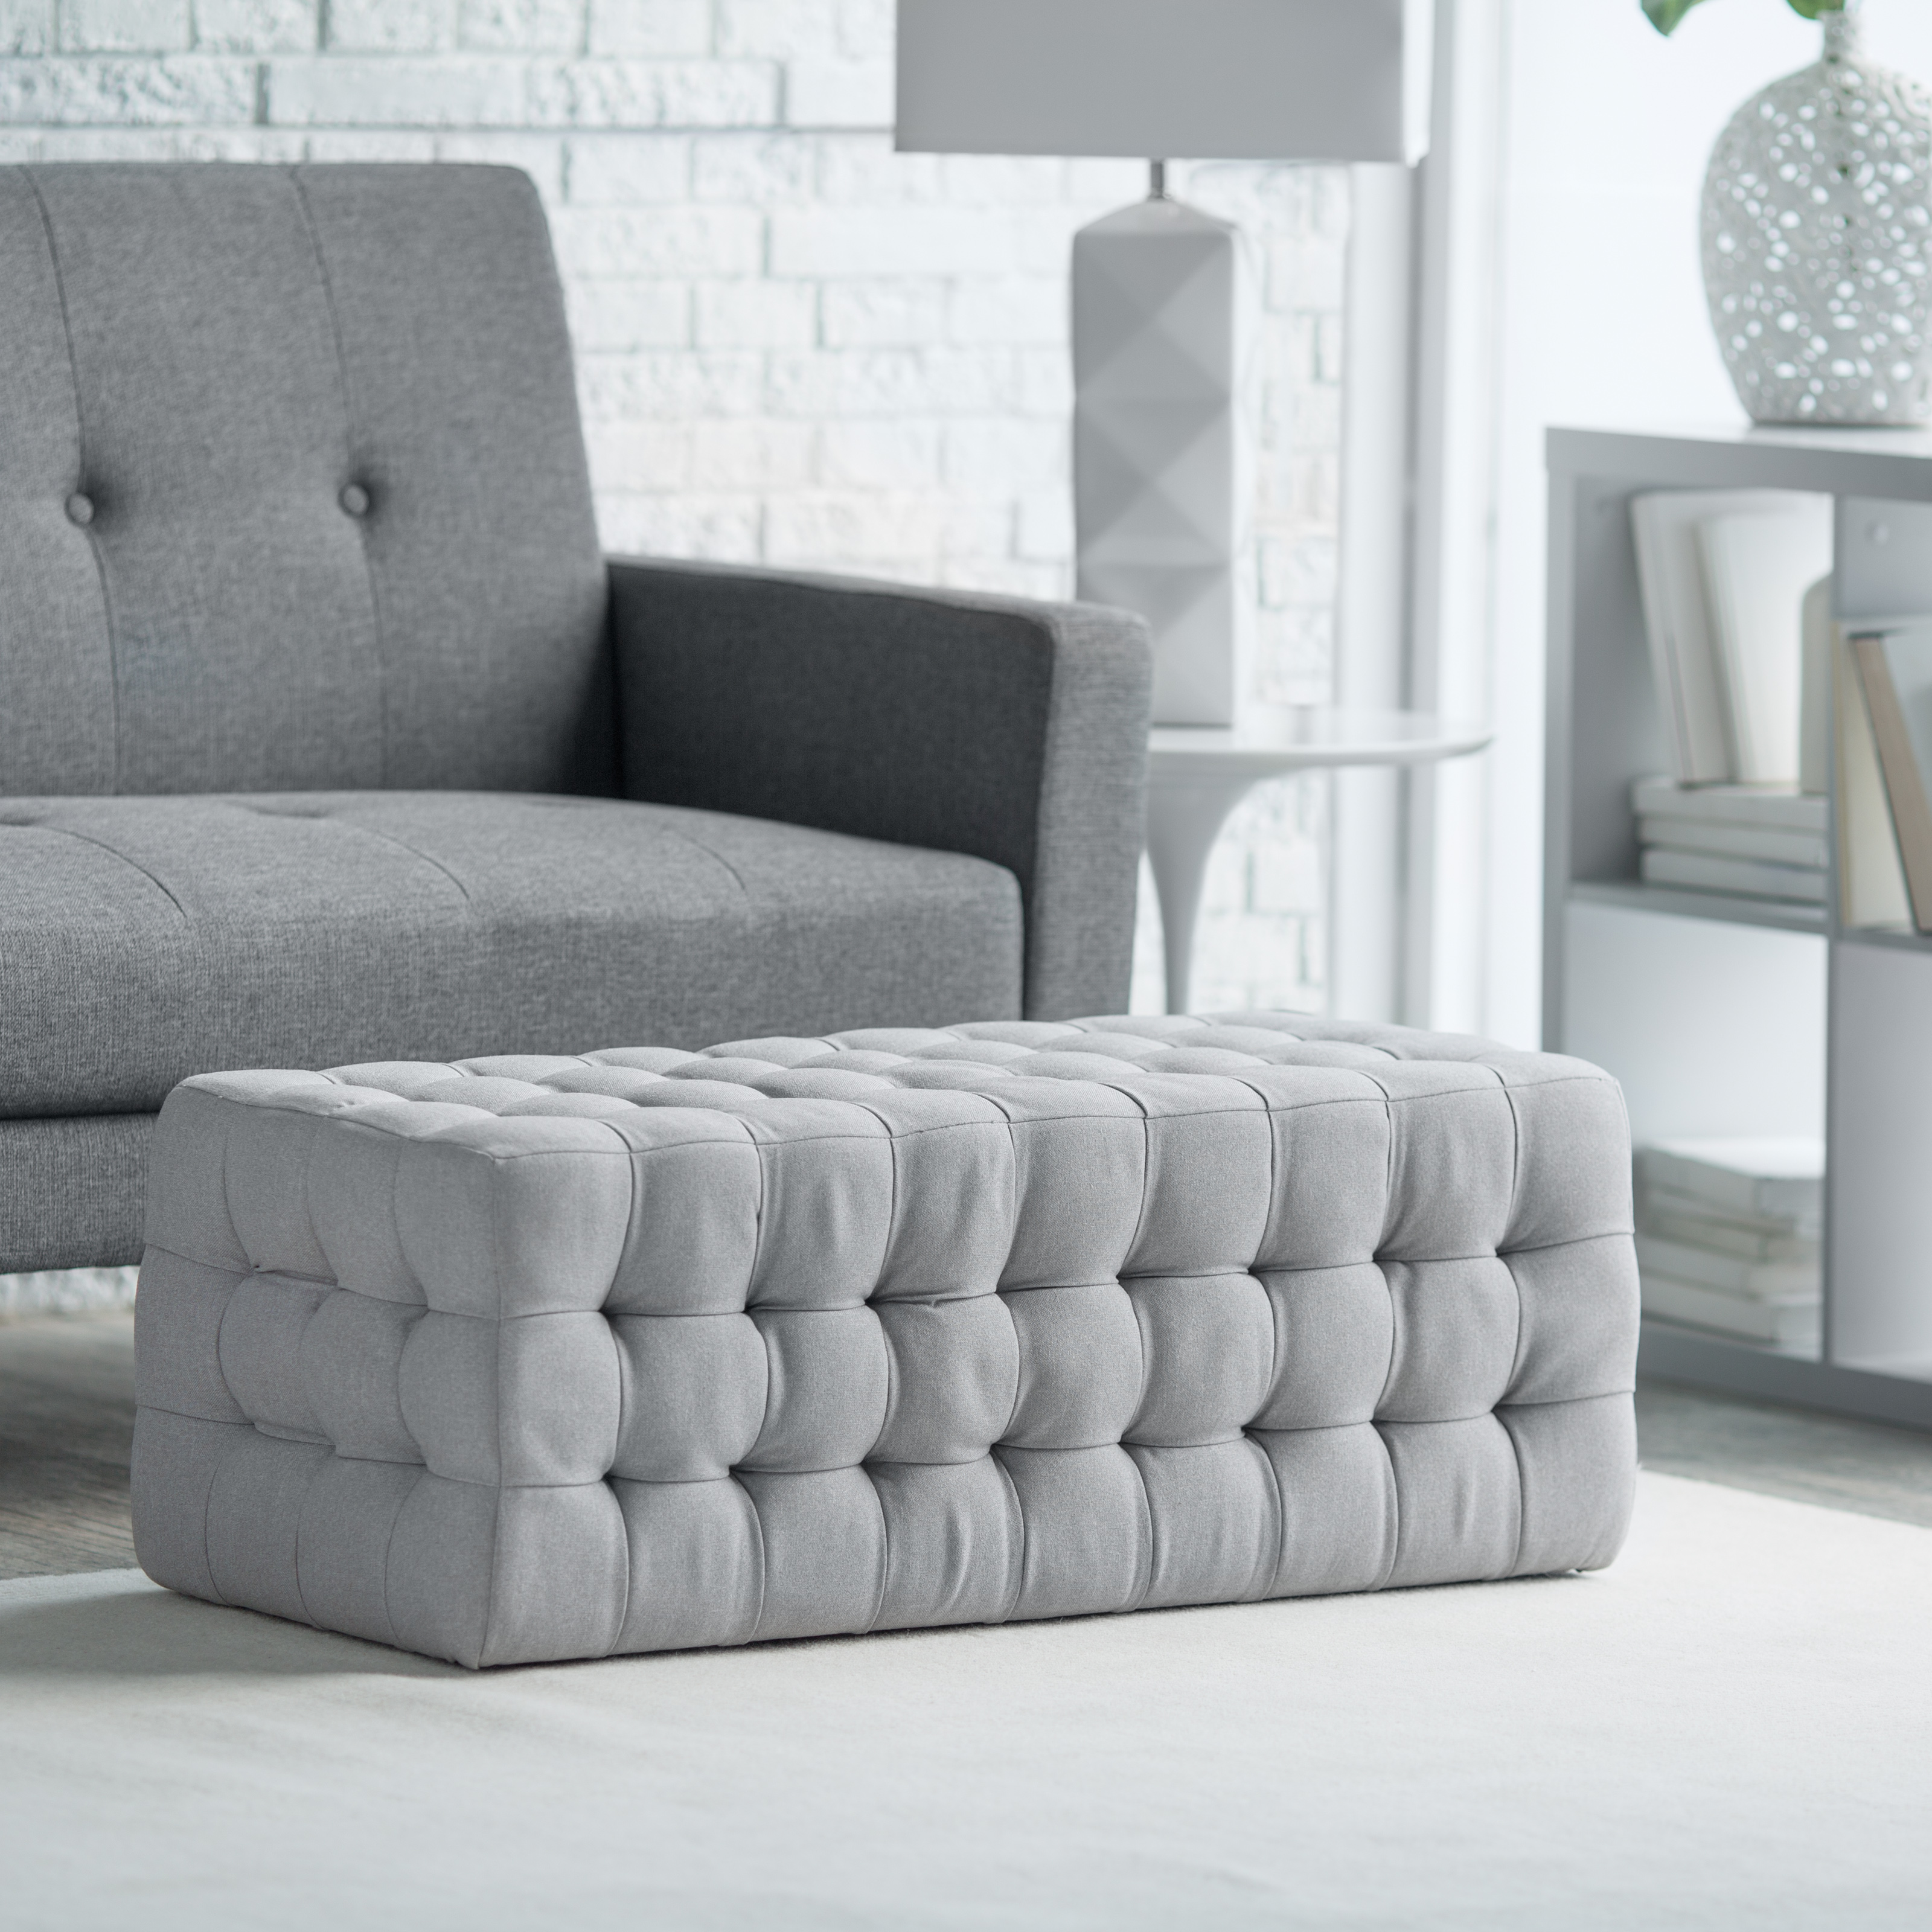 belham living allover tufted rectangle ottoman  grey  hayneedle -